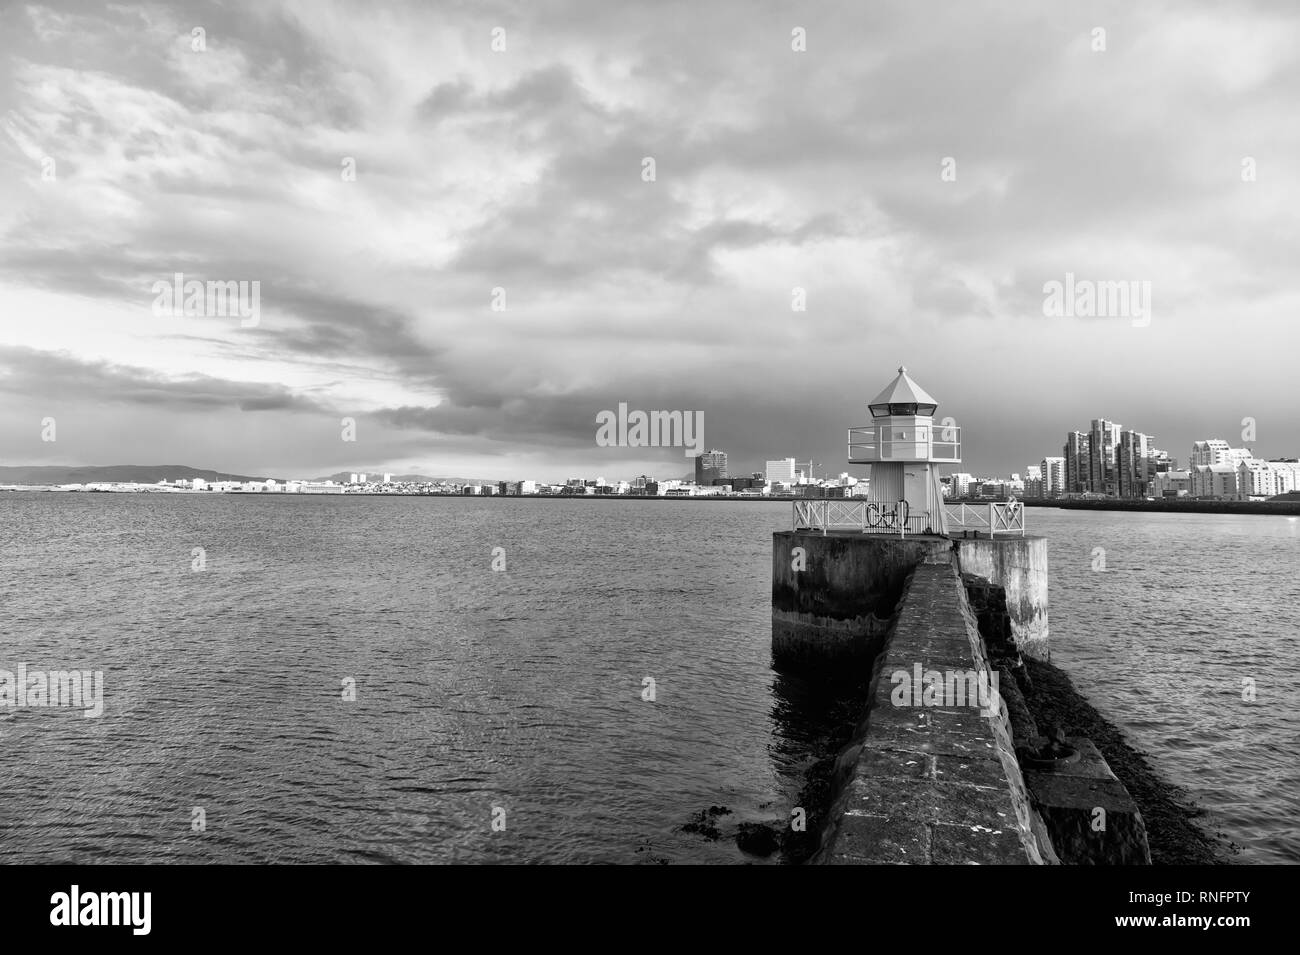 Sea port navigation concept. Sea transportation and navigation. Lighthouse on sea pier in reykjavik iceland. Lighthouse yellow bright tower at sea shore. Seascape and skyline with bright lighthouse. - Stock Image